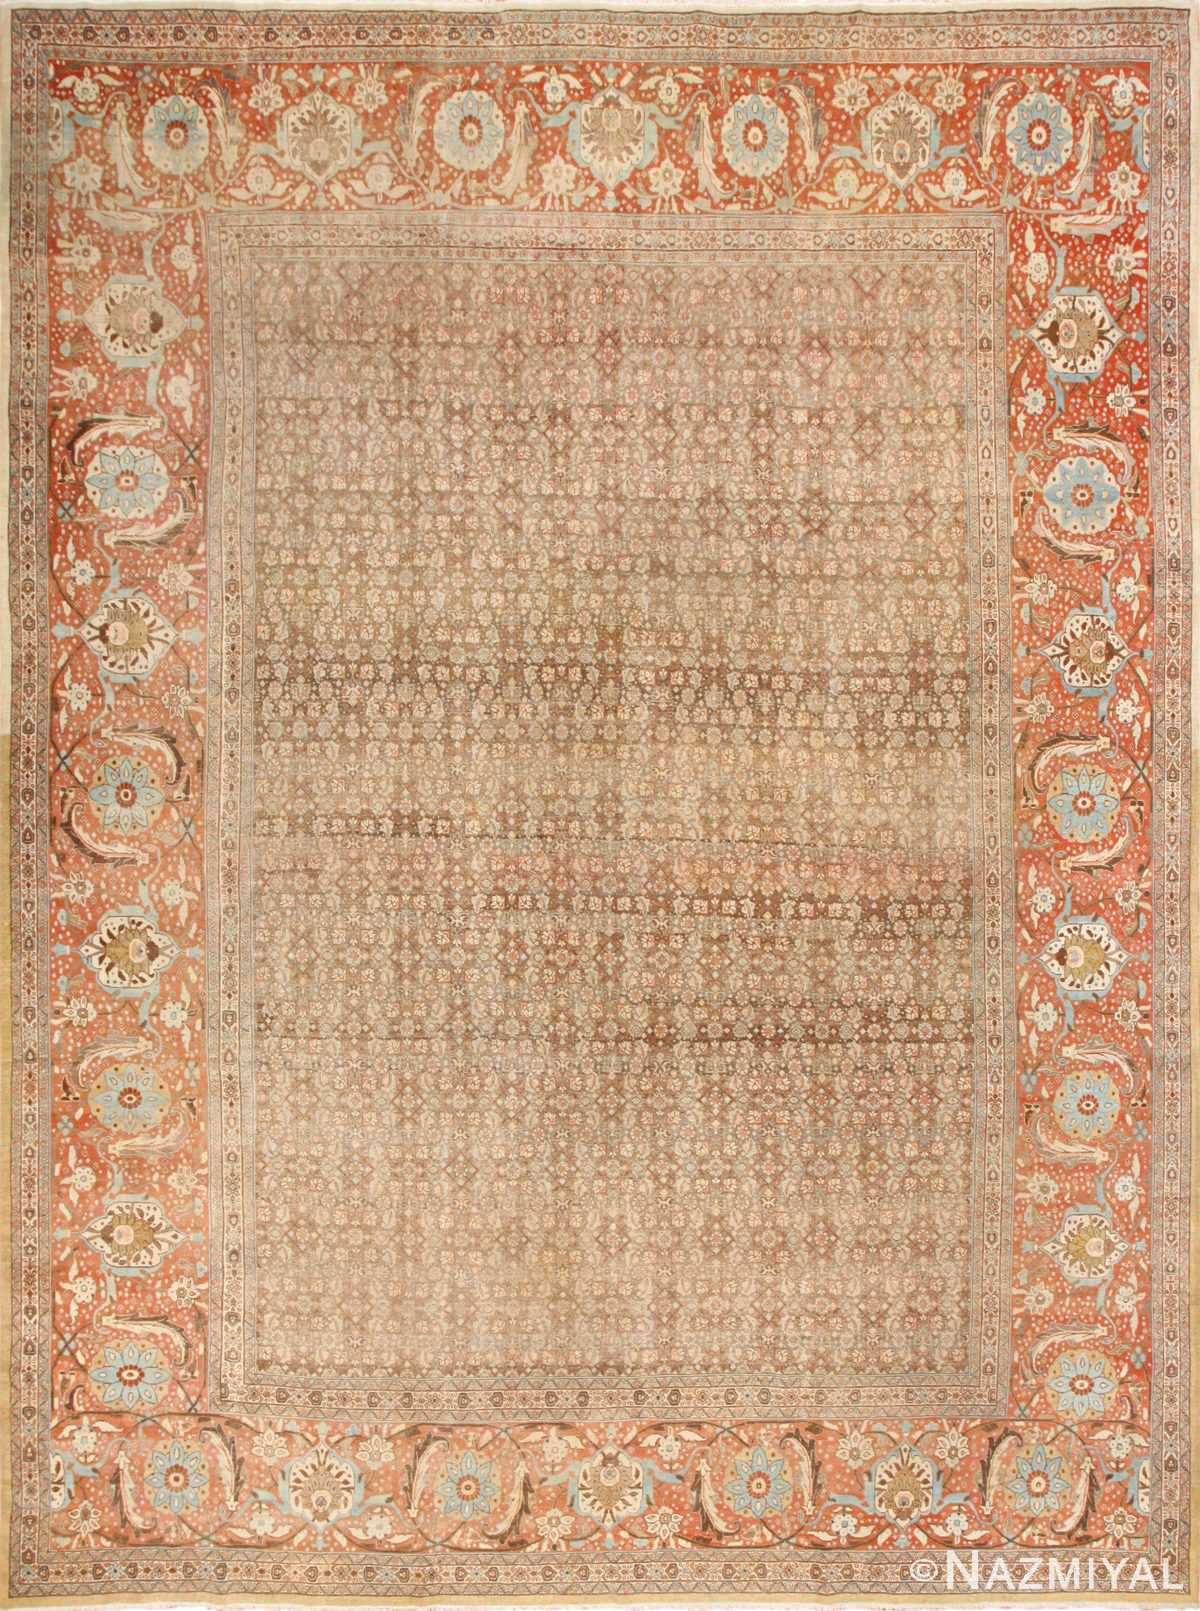 Antique Persian Tabriz Rug 50627 by Nazmiyal